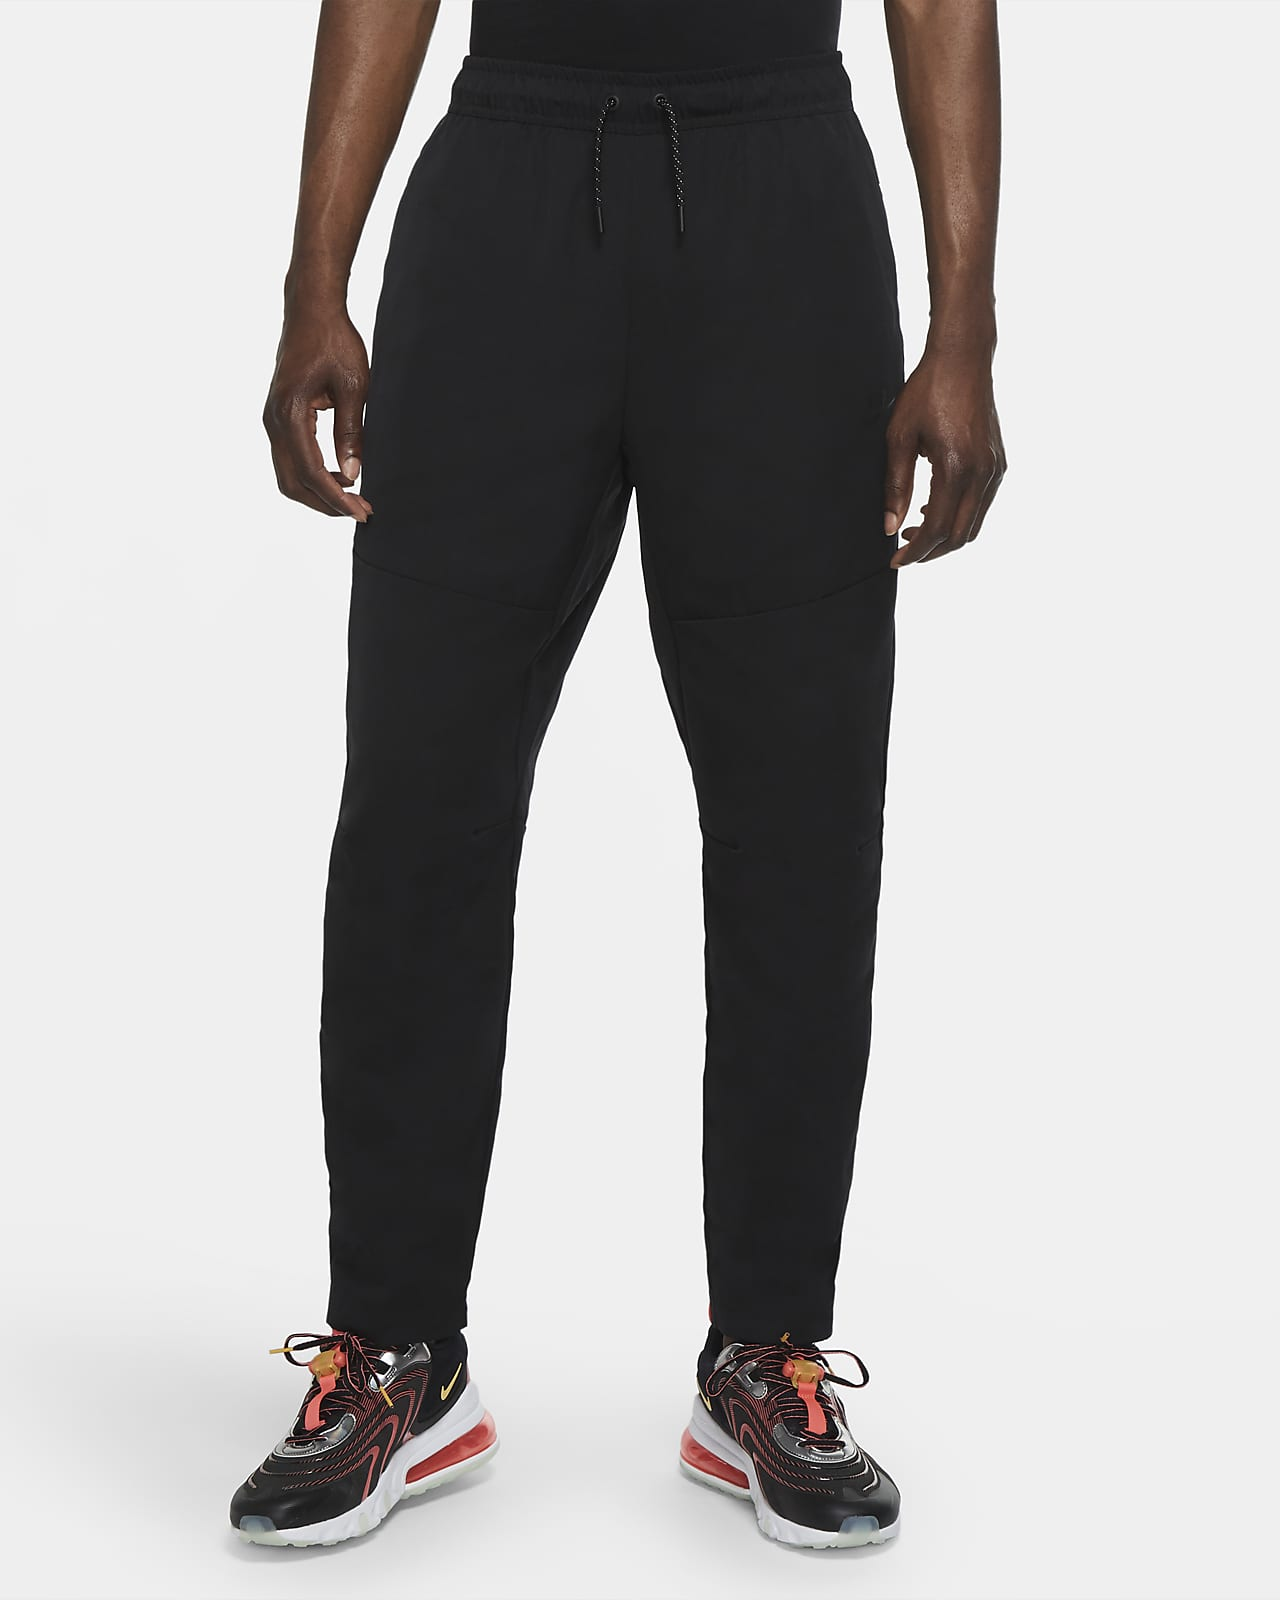 Pantaloni Repel Nike Sportswear Tech Essentials - Uomo